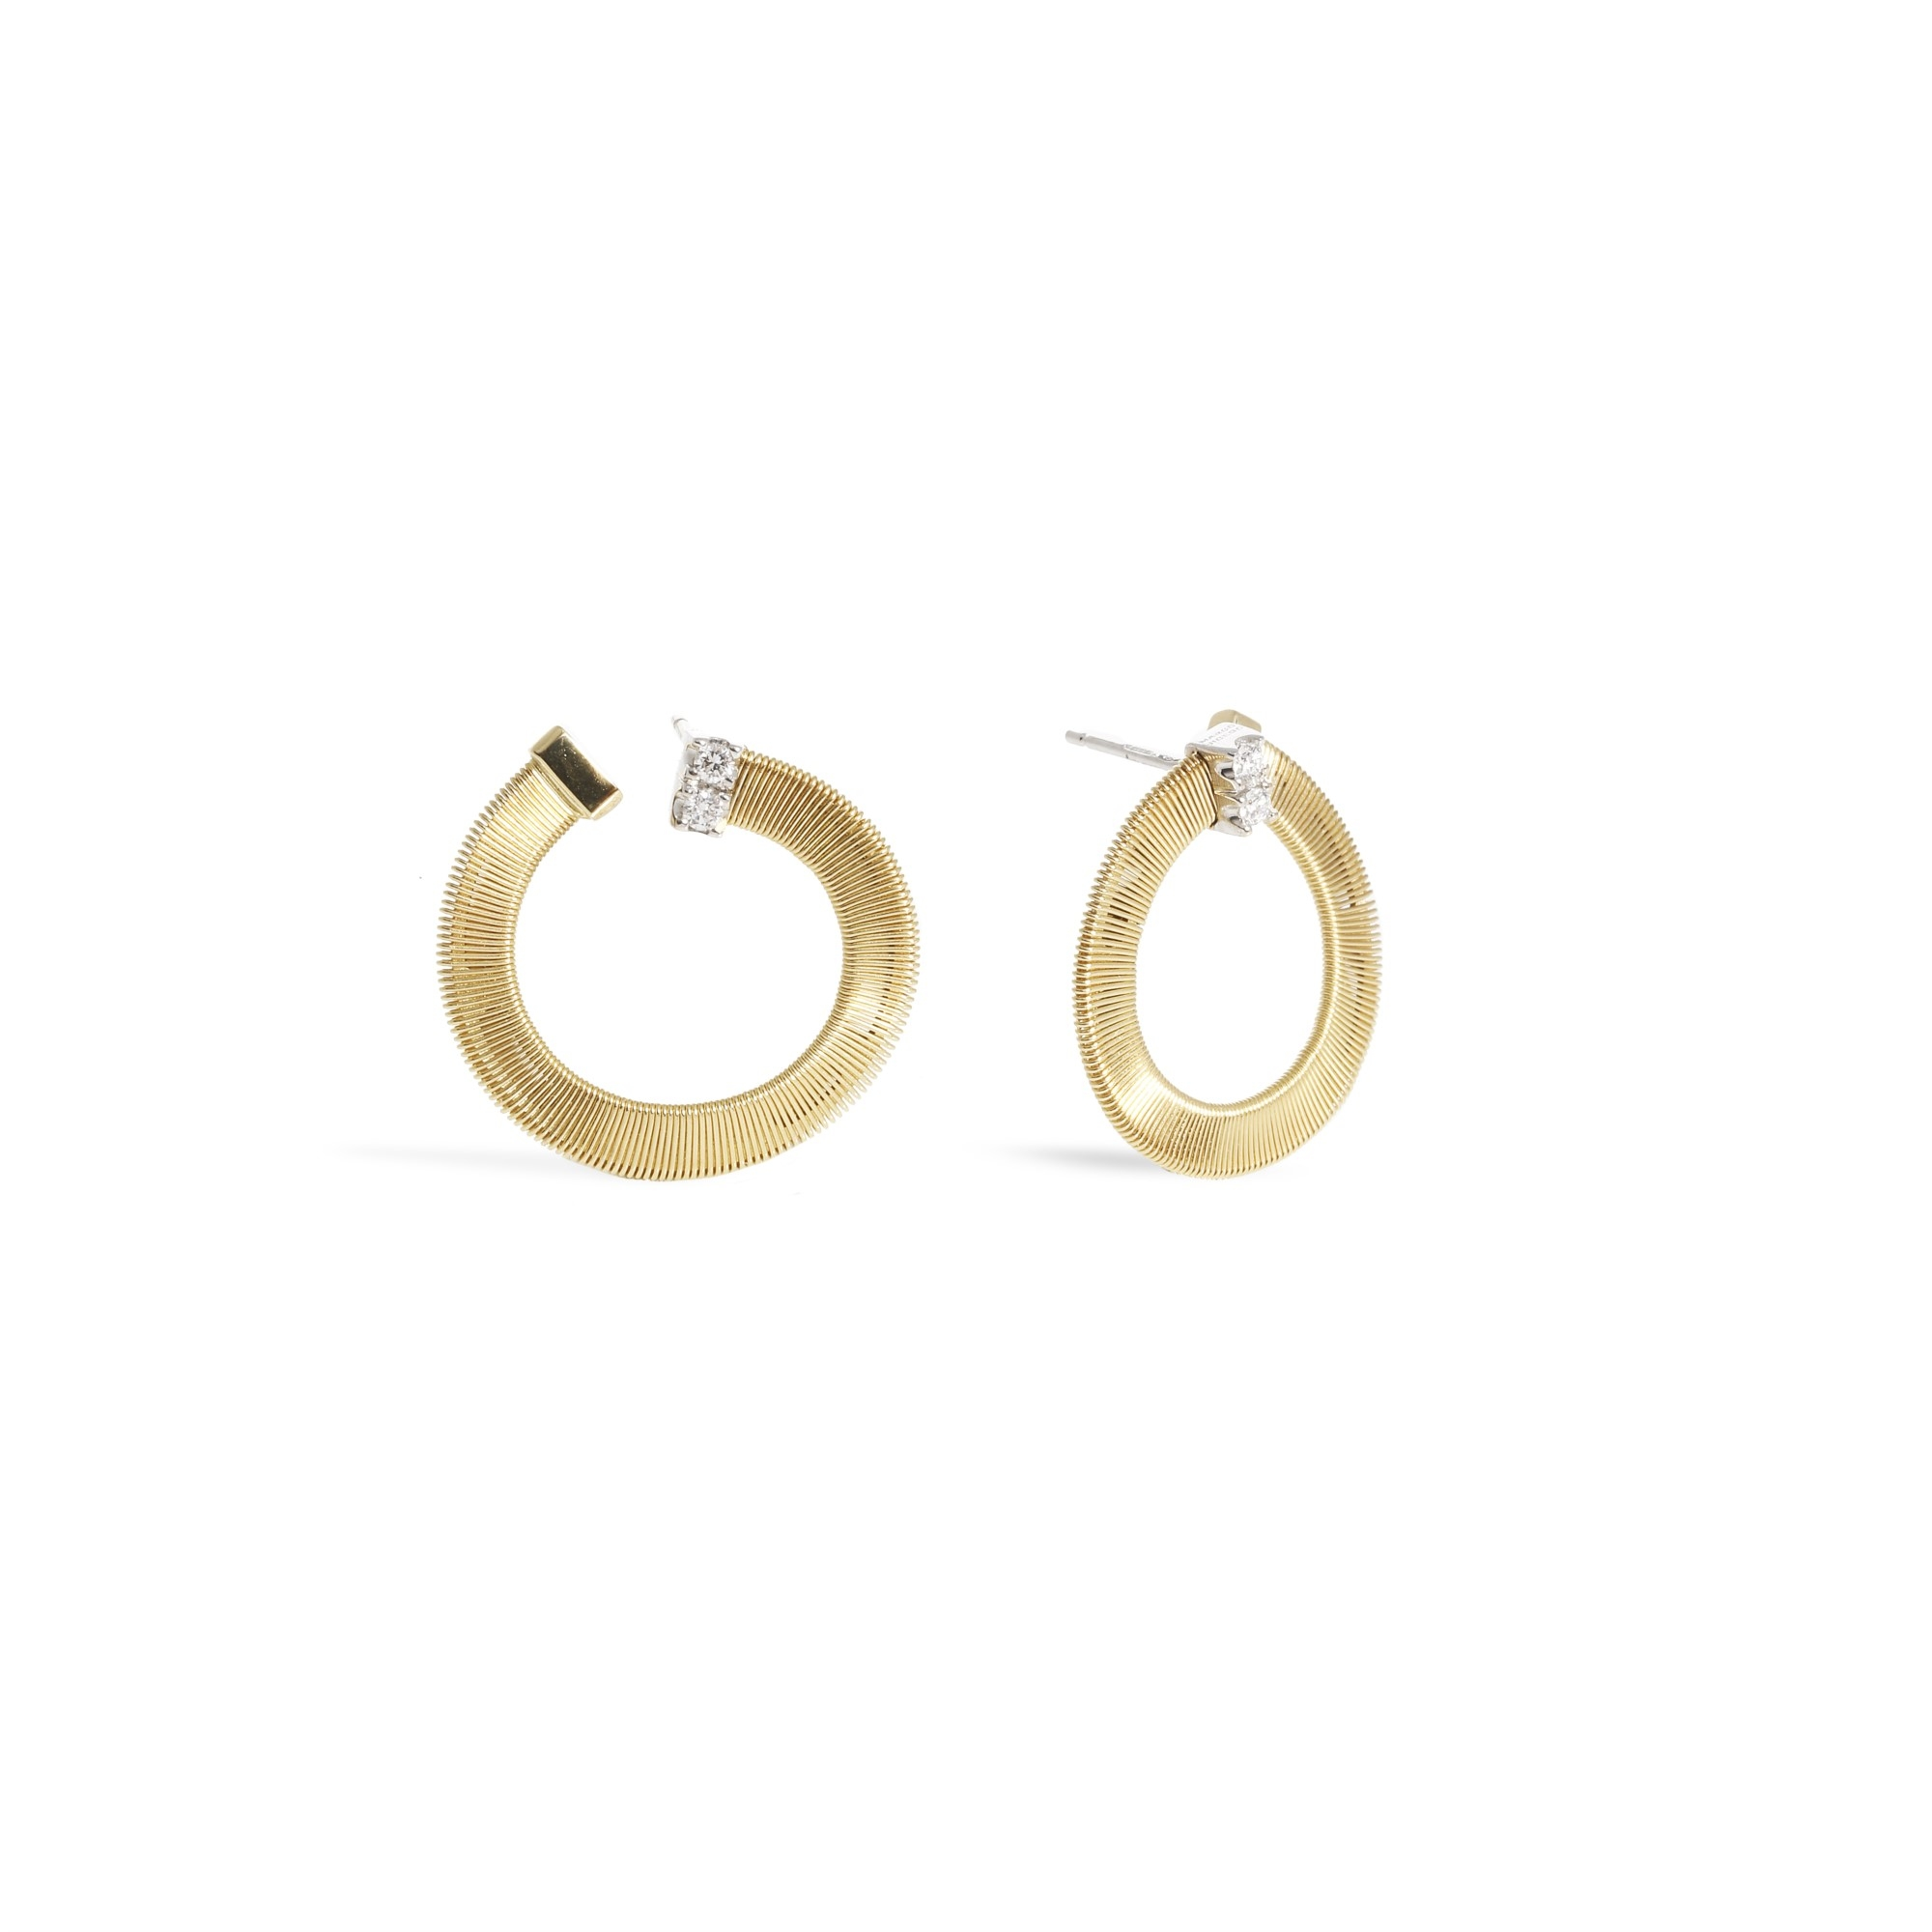 Marco Bicego 18K Yellow Gold .12cts  Diamonds Gold Earrings with Stones OG376 B YW